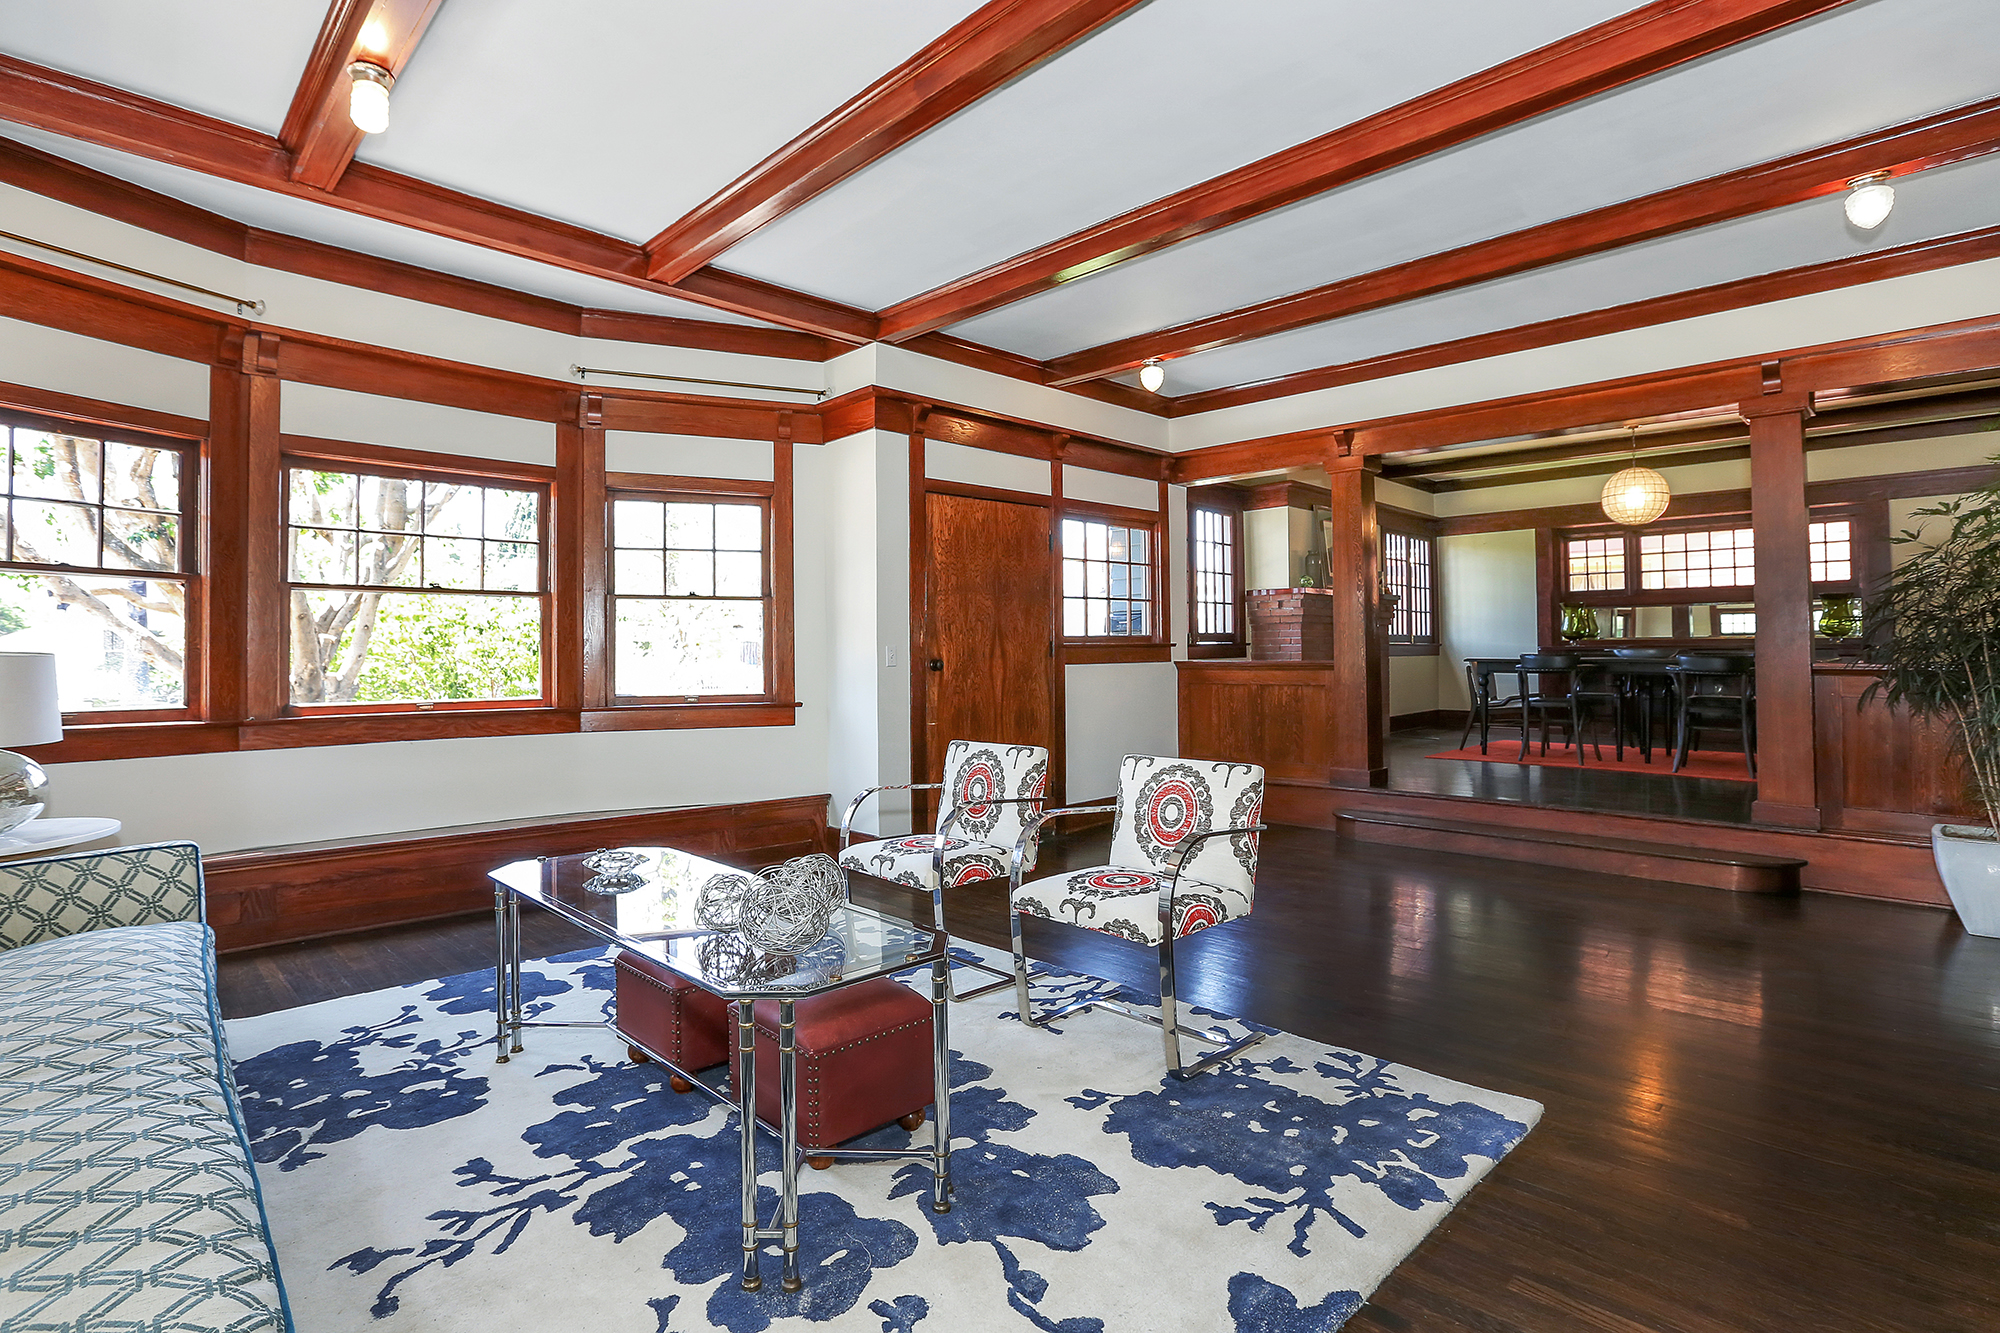 The main floor boasts five rooms, including a huge living room that receives loads of natural light through its picture window. One of my favorite features of the home is the raised dining room, whose entry is flanked by gorgeous wood columns.